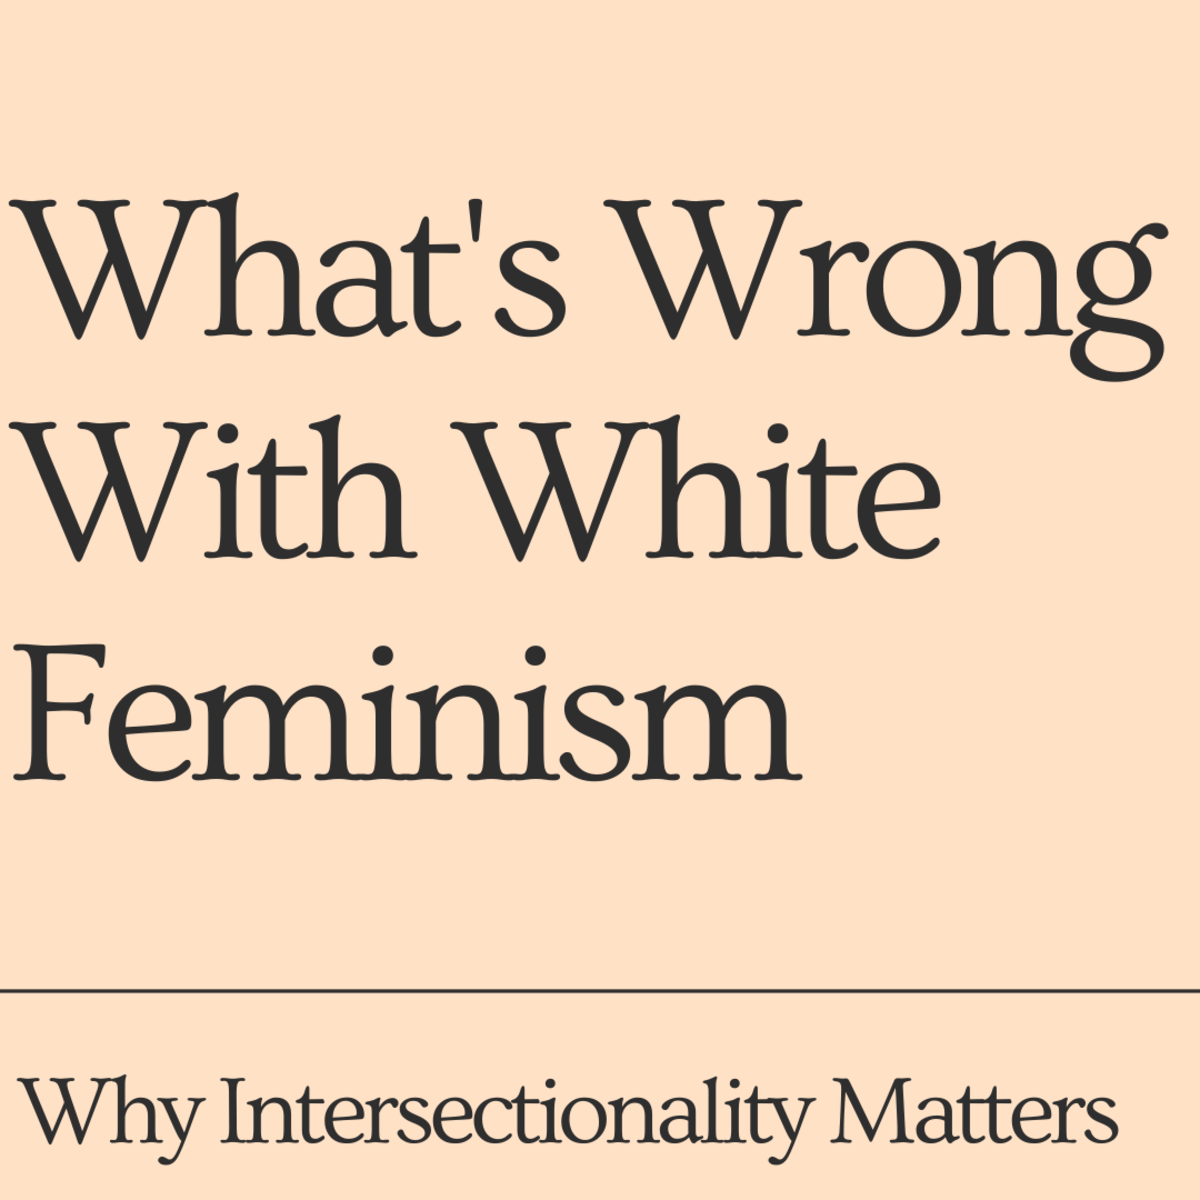 Learn about intersectionality and why it's important.